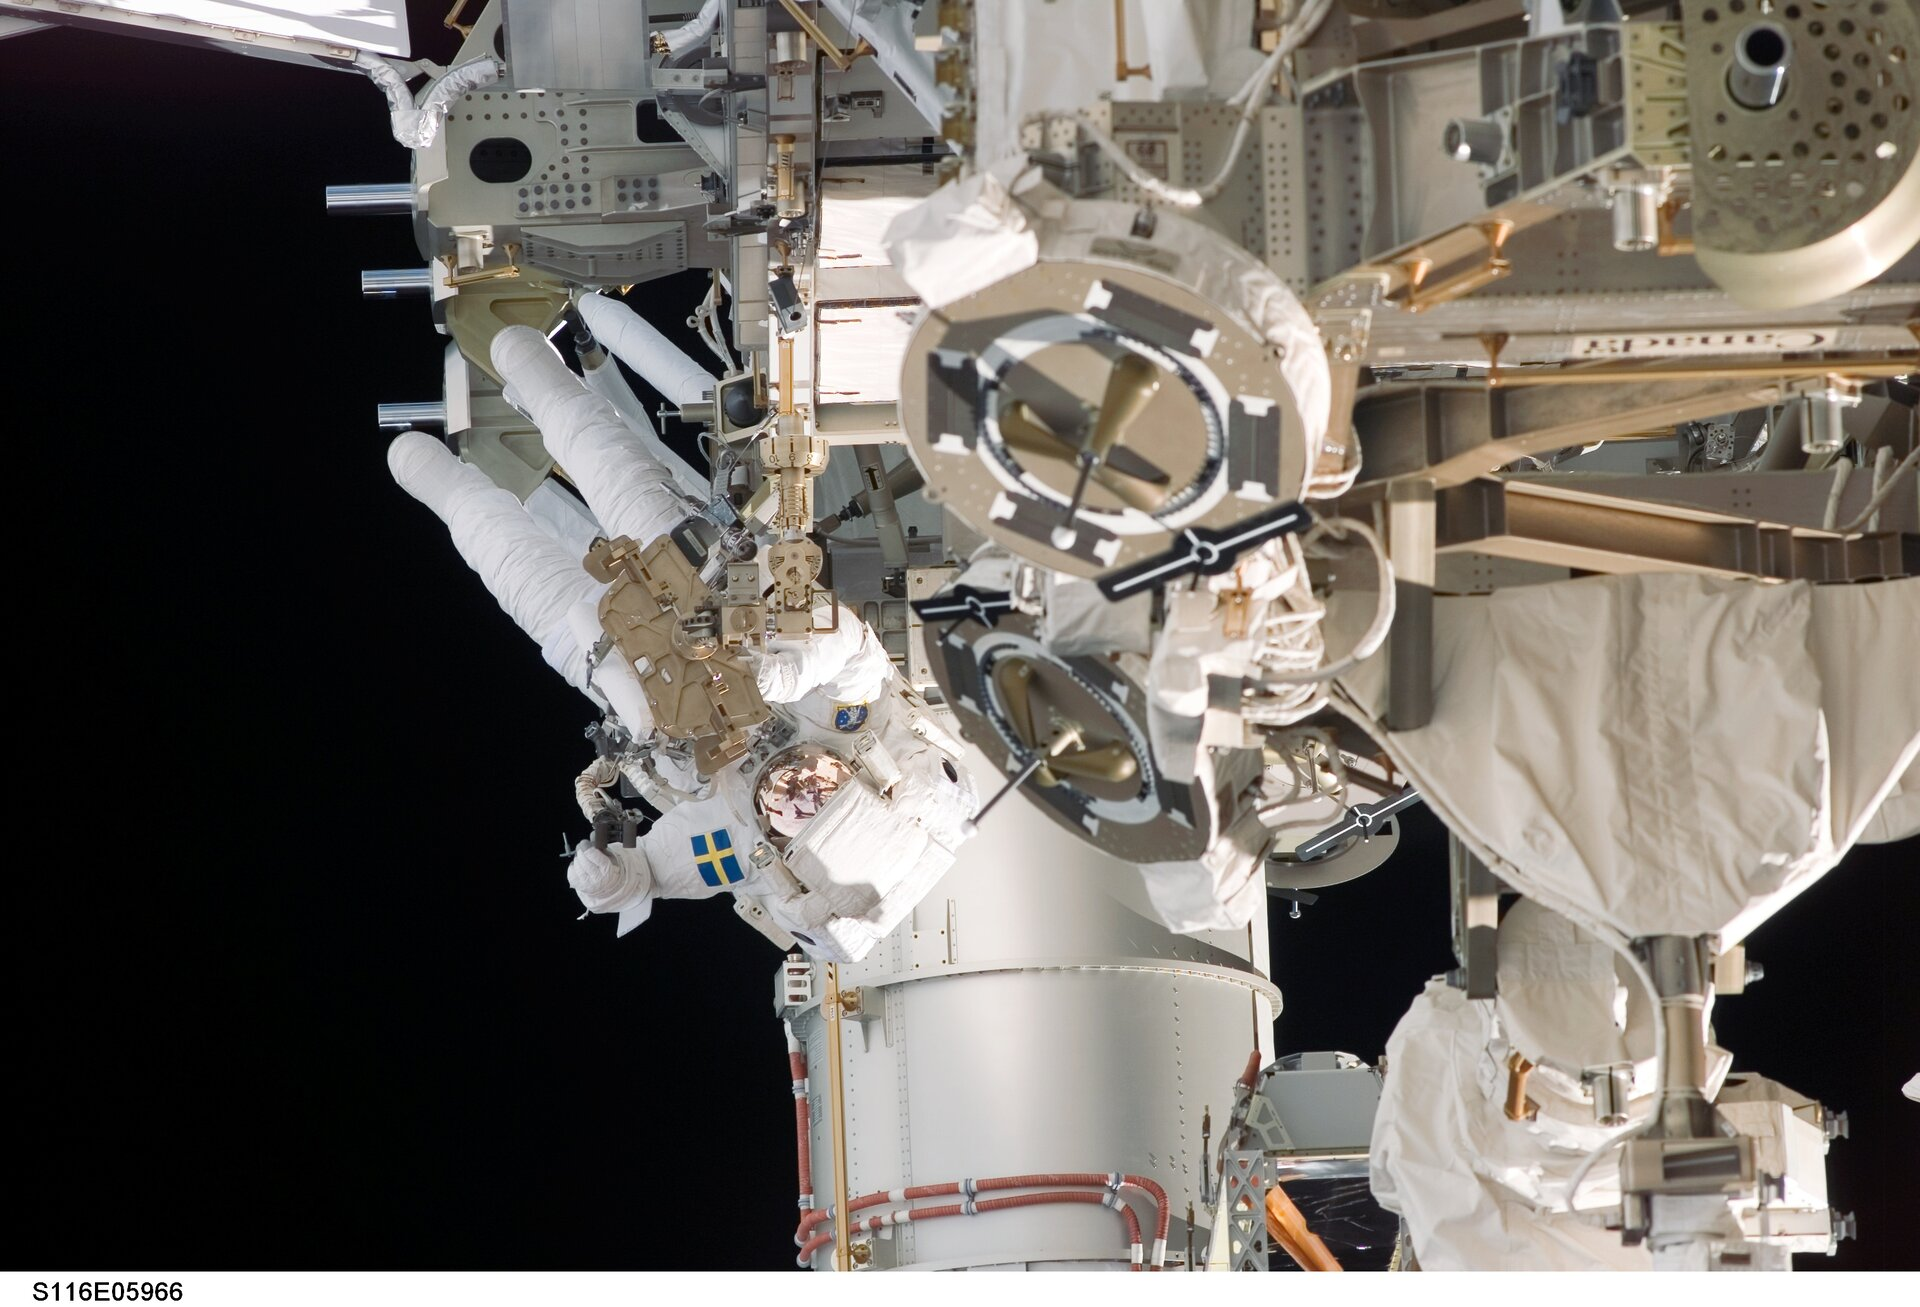 Christer Fuglesang during his first spacewalk